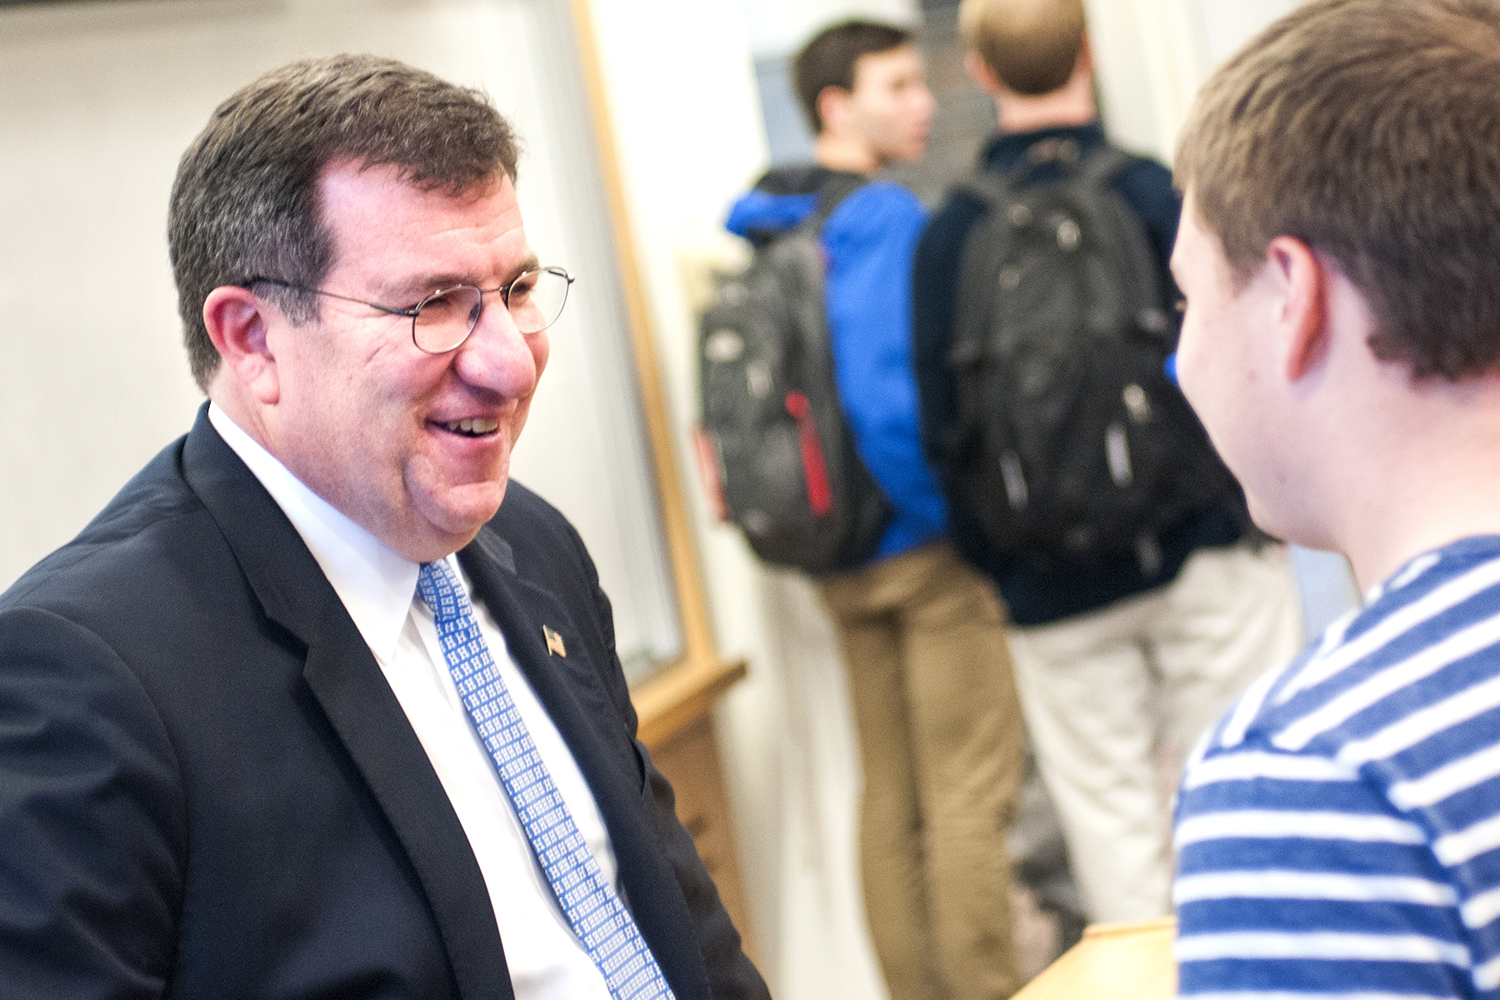 Daniel Connolly '85, P'18 speaks with students after his lecture at Hamilton.